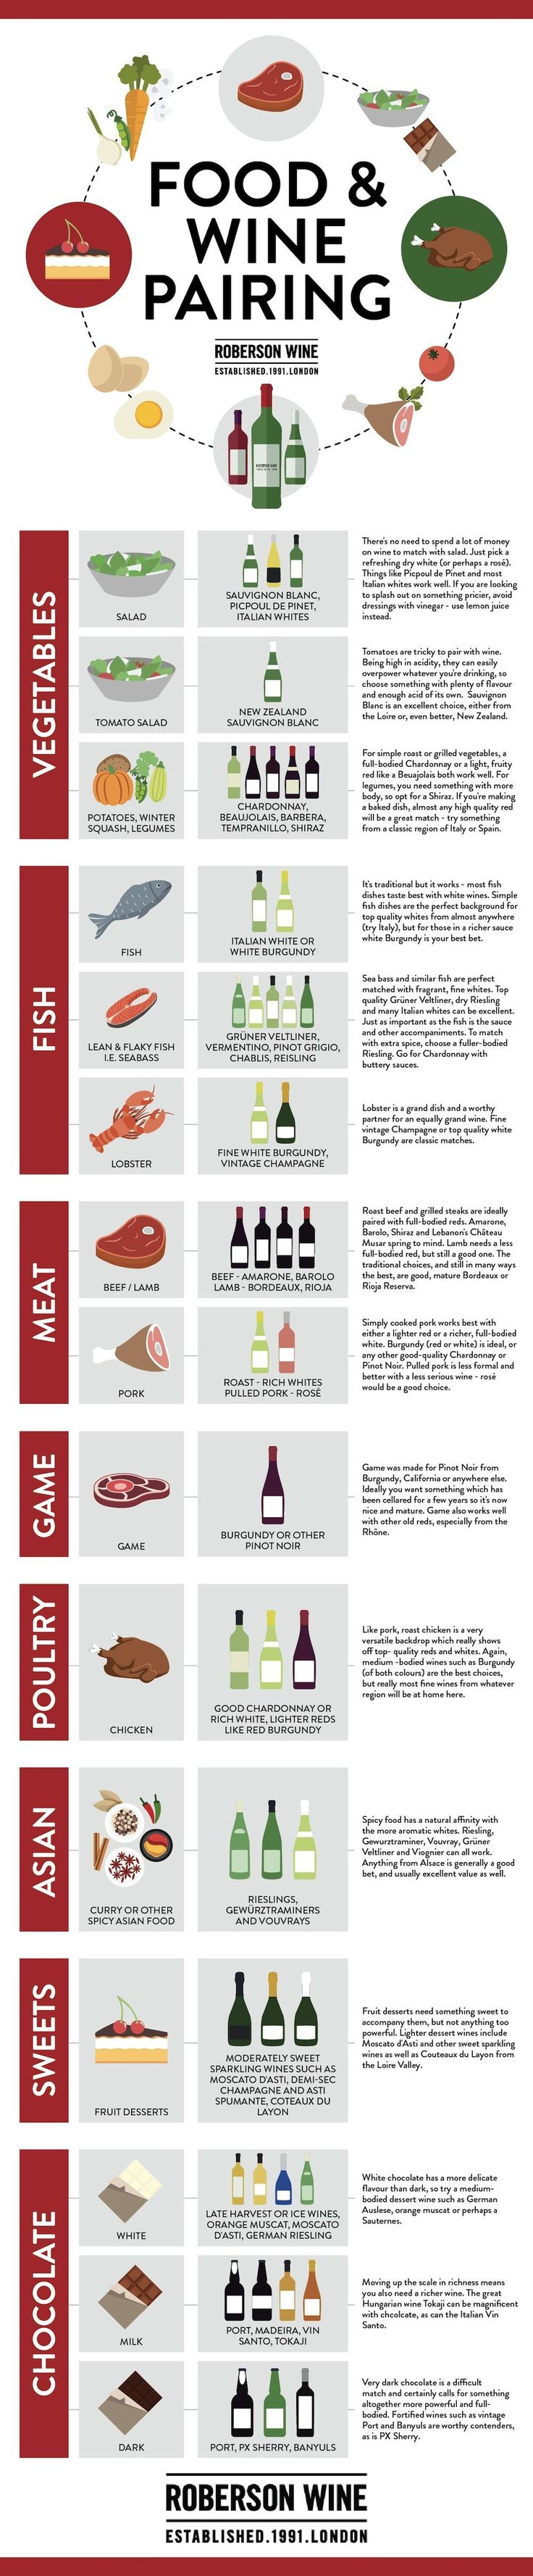 Food and wine pairings